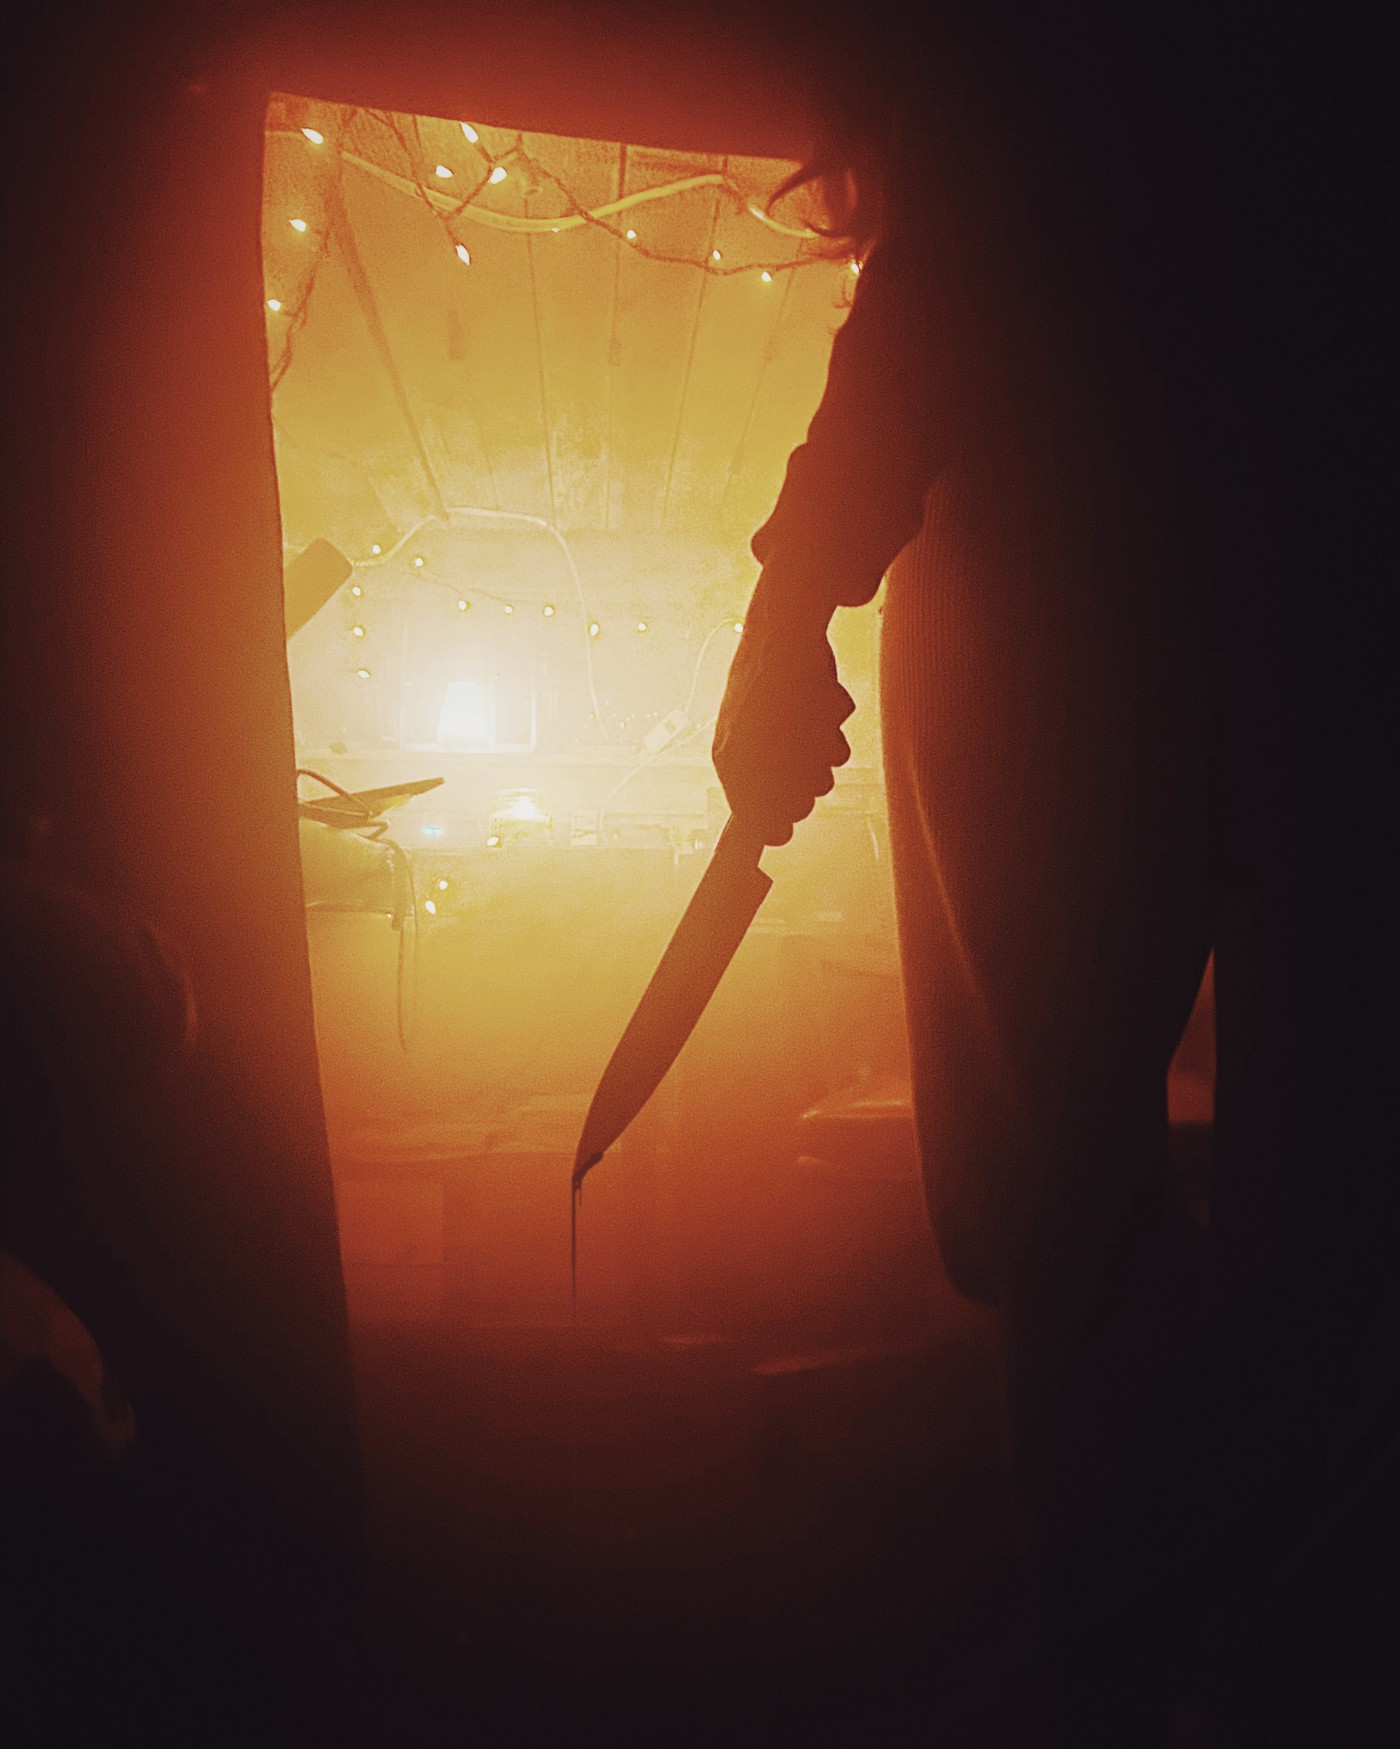 Man holding a knife depicting the Shadyside killers in Fear Street film series by Netflix